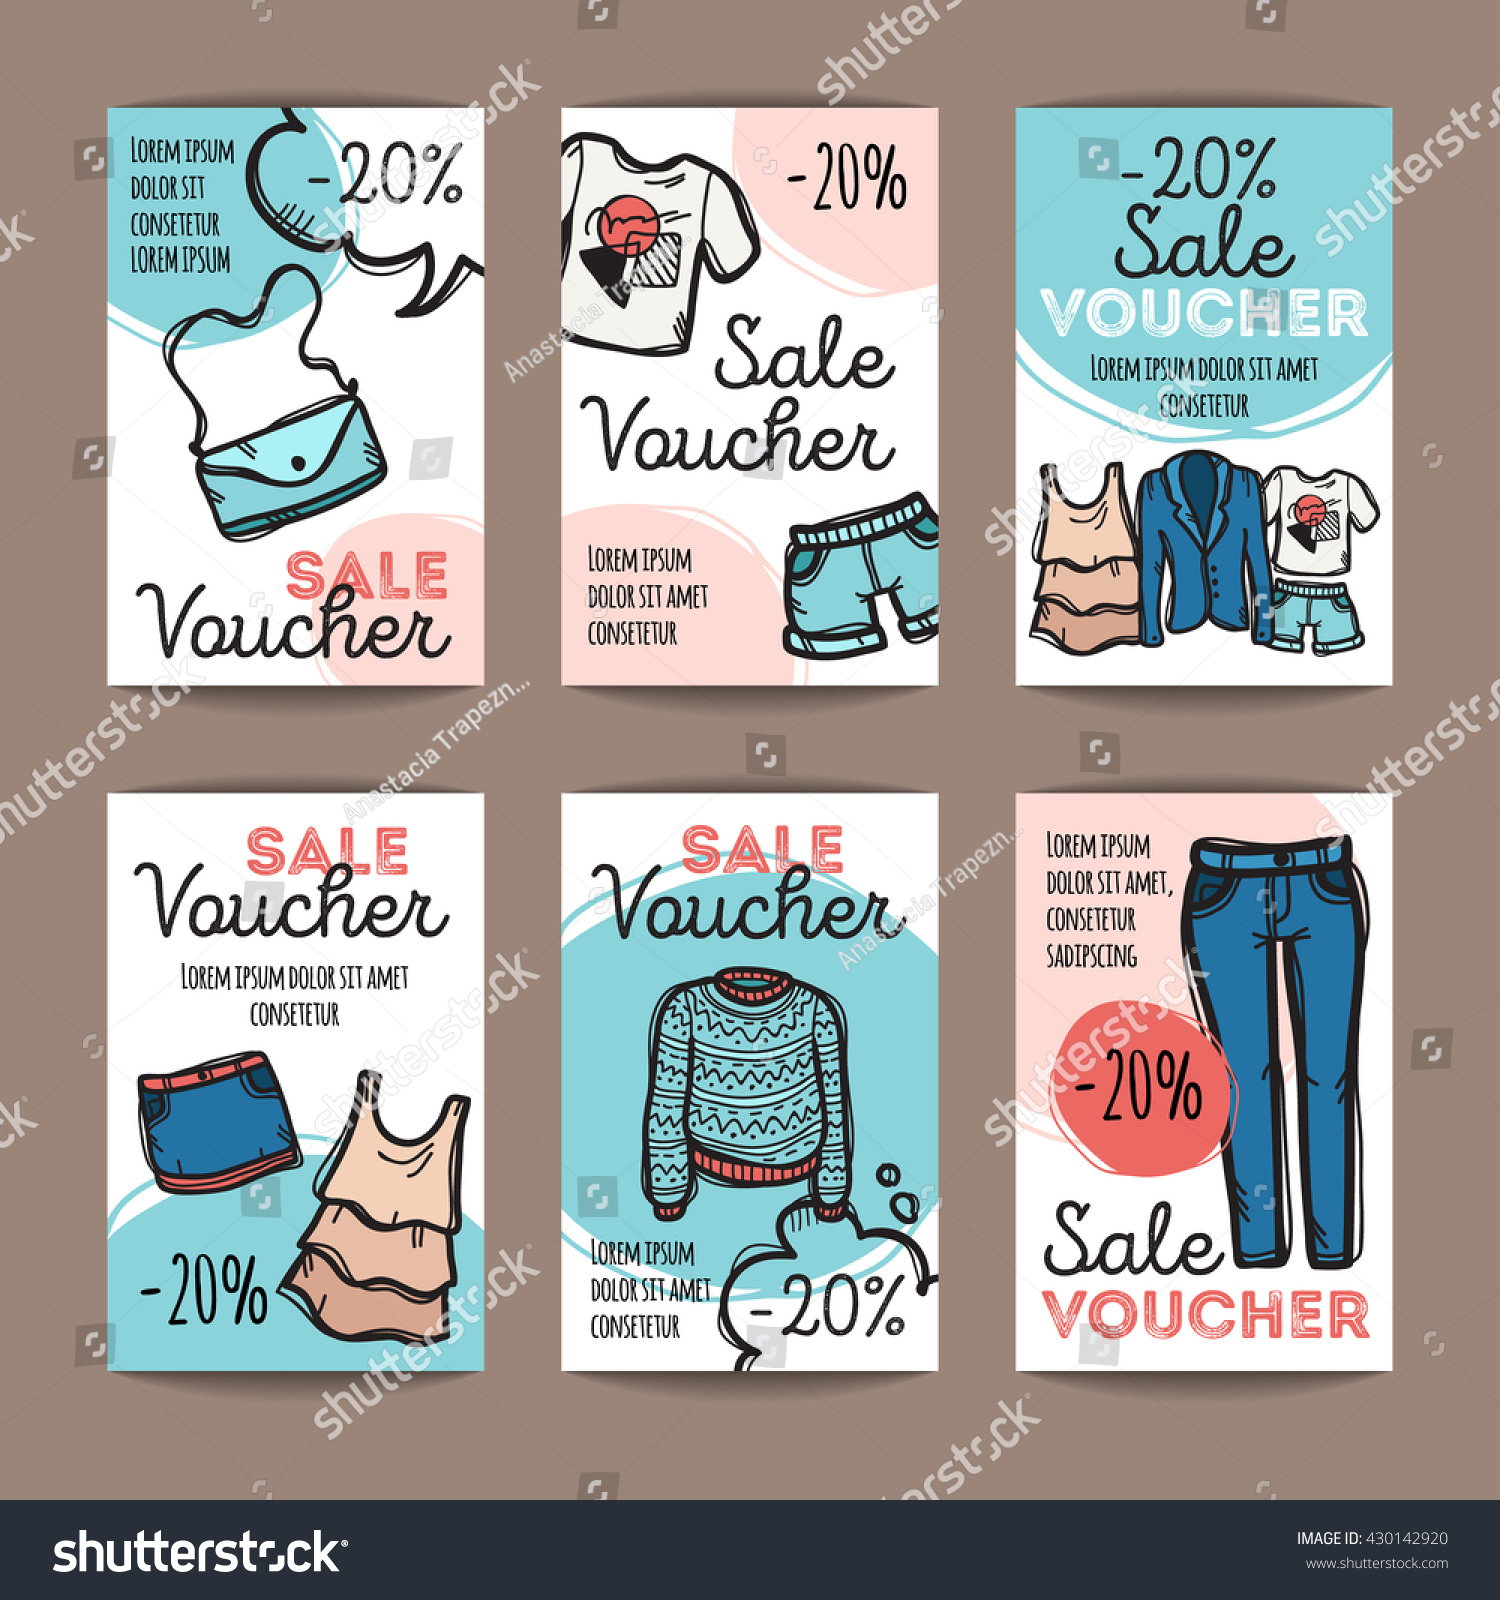 K&g clothing store coupons